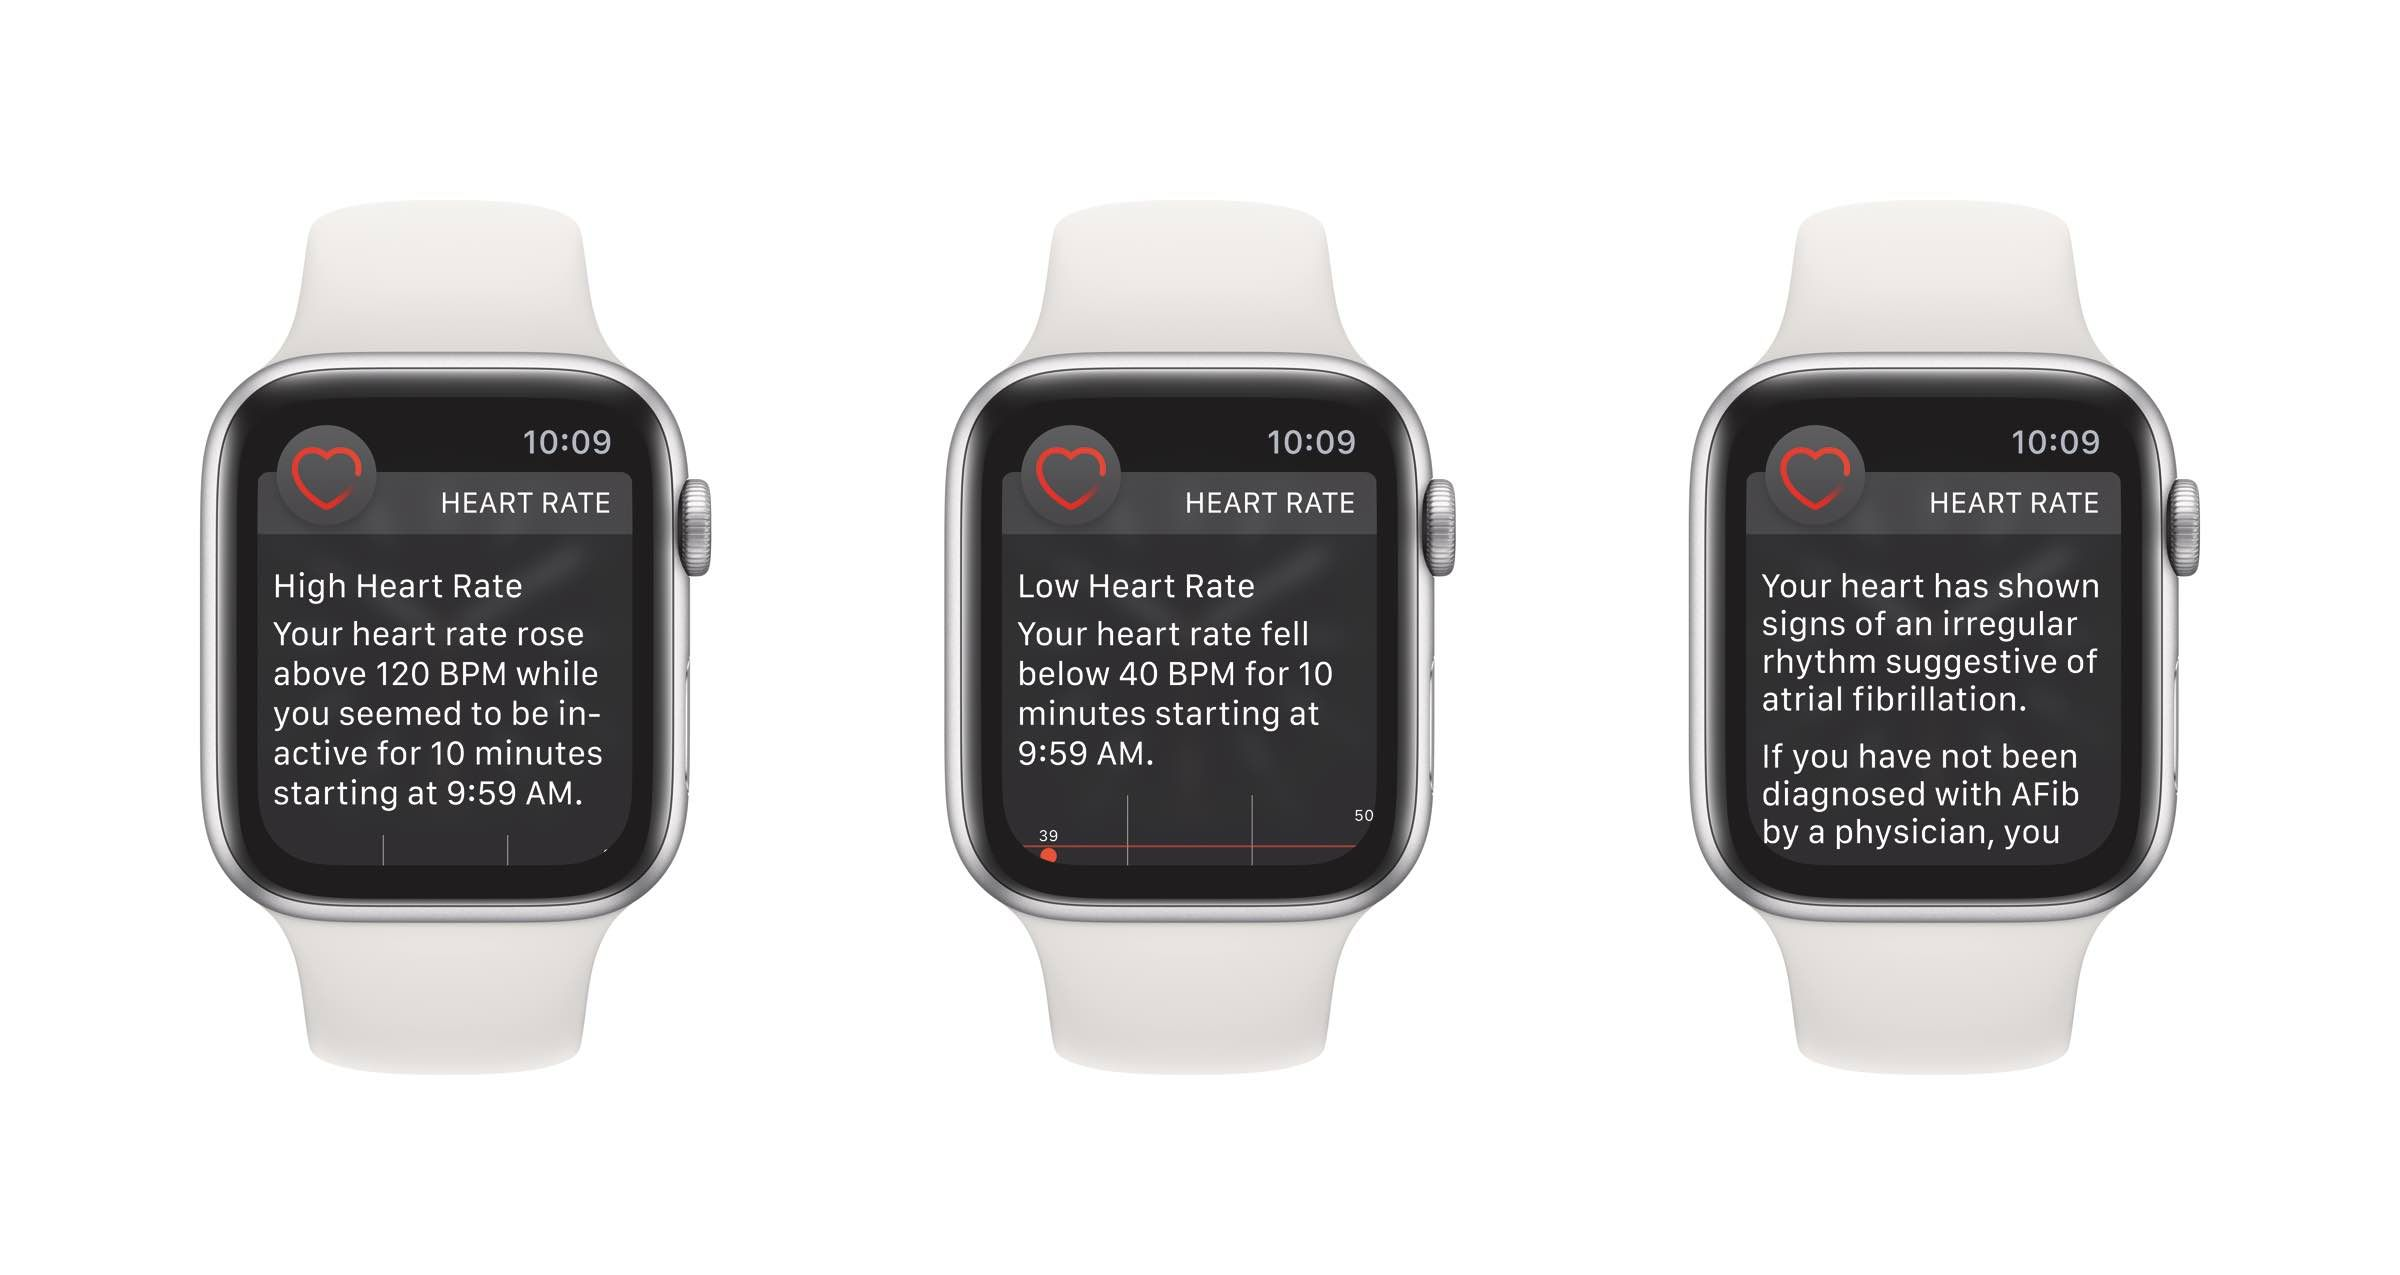 Best Heart Rate Monitors To Track Heart Health